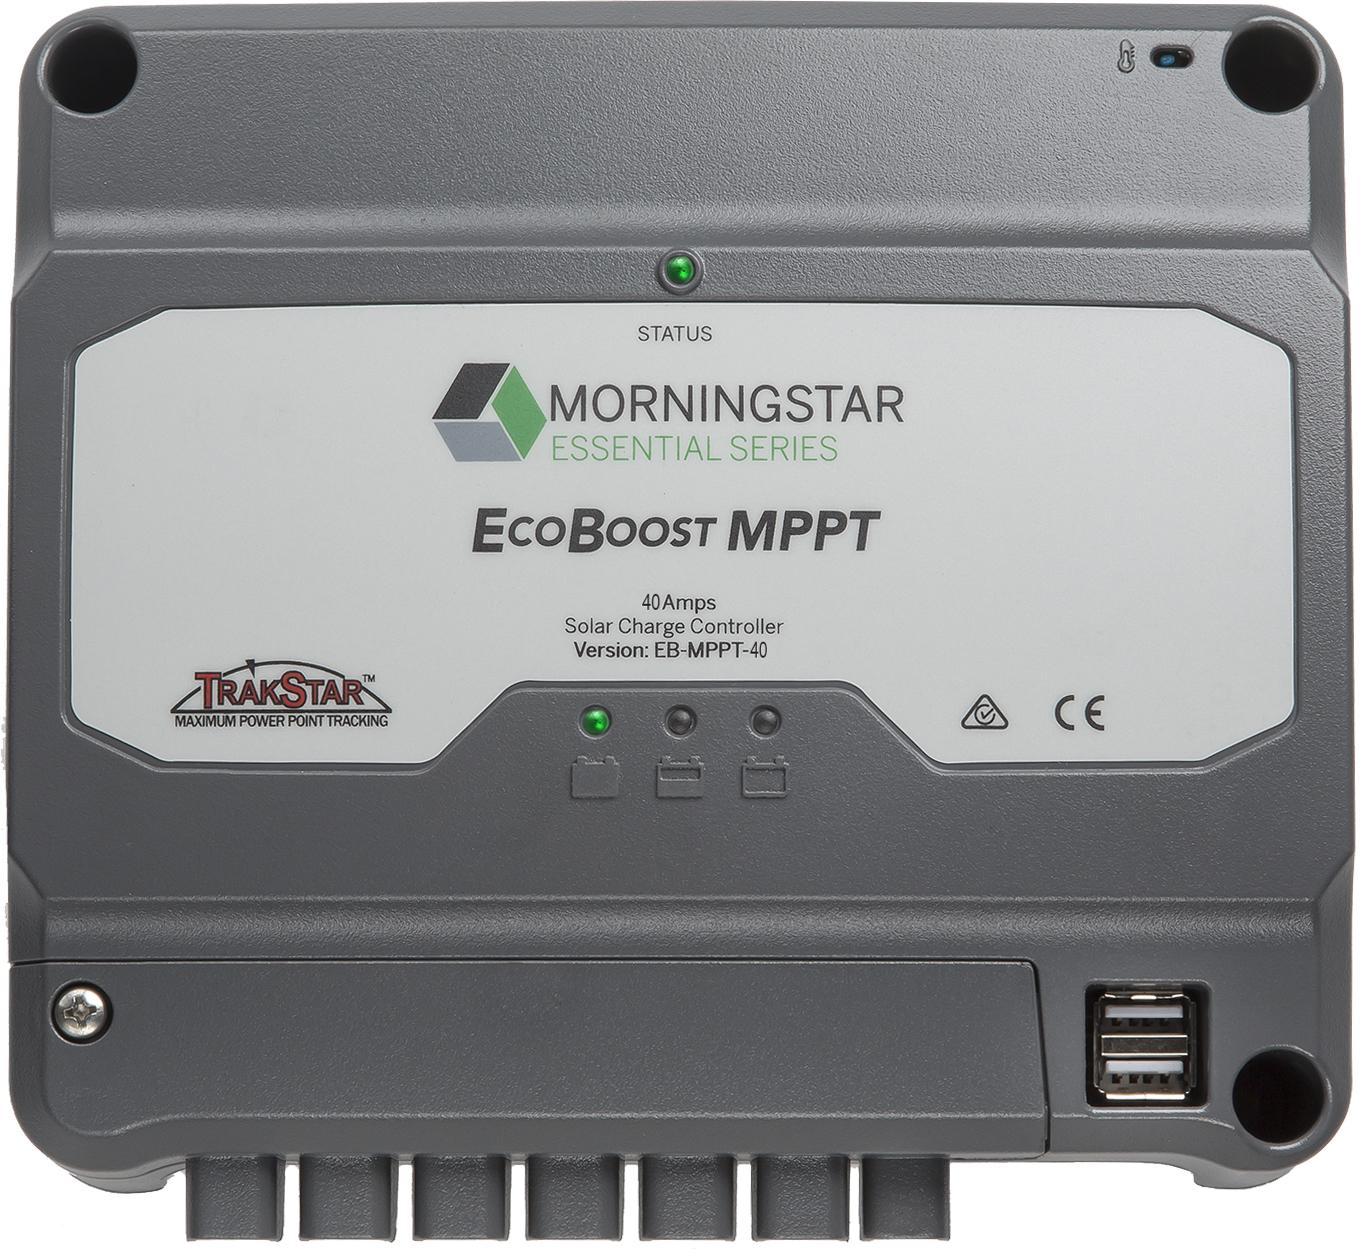 Ecoboost Mppt Solar Controller Enerdrive Pty Ltd Wiring Schematic Also Charge